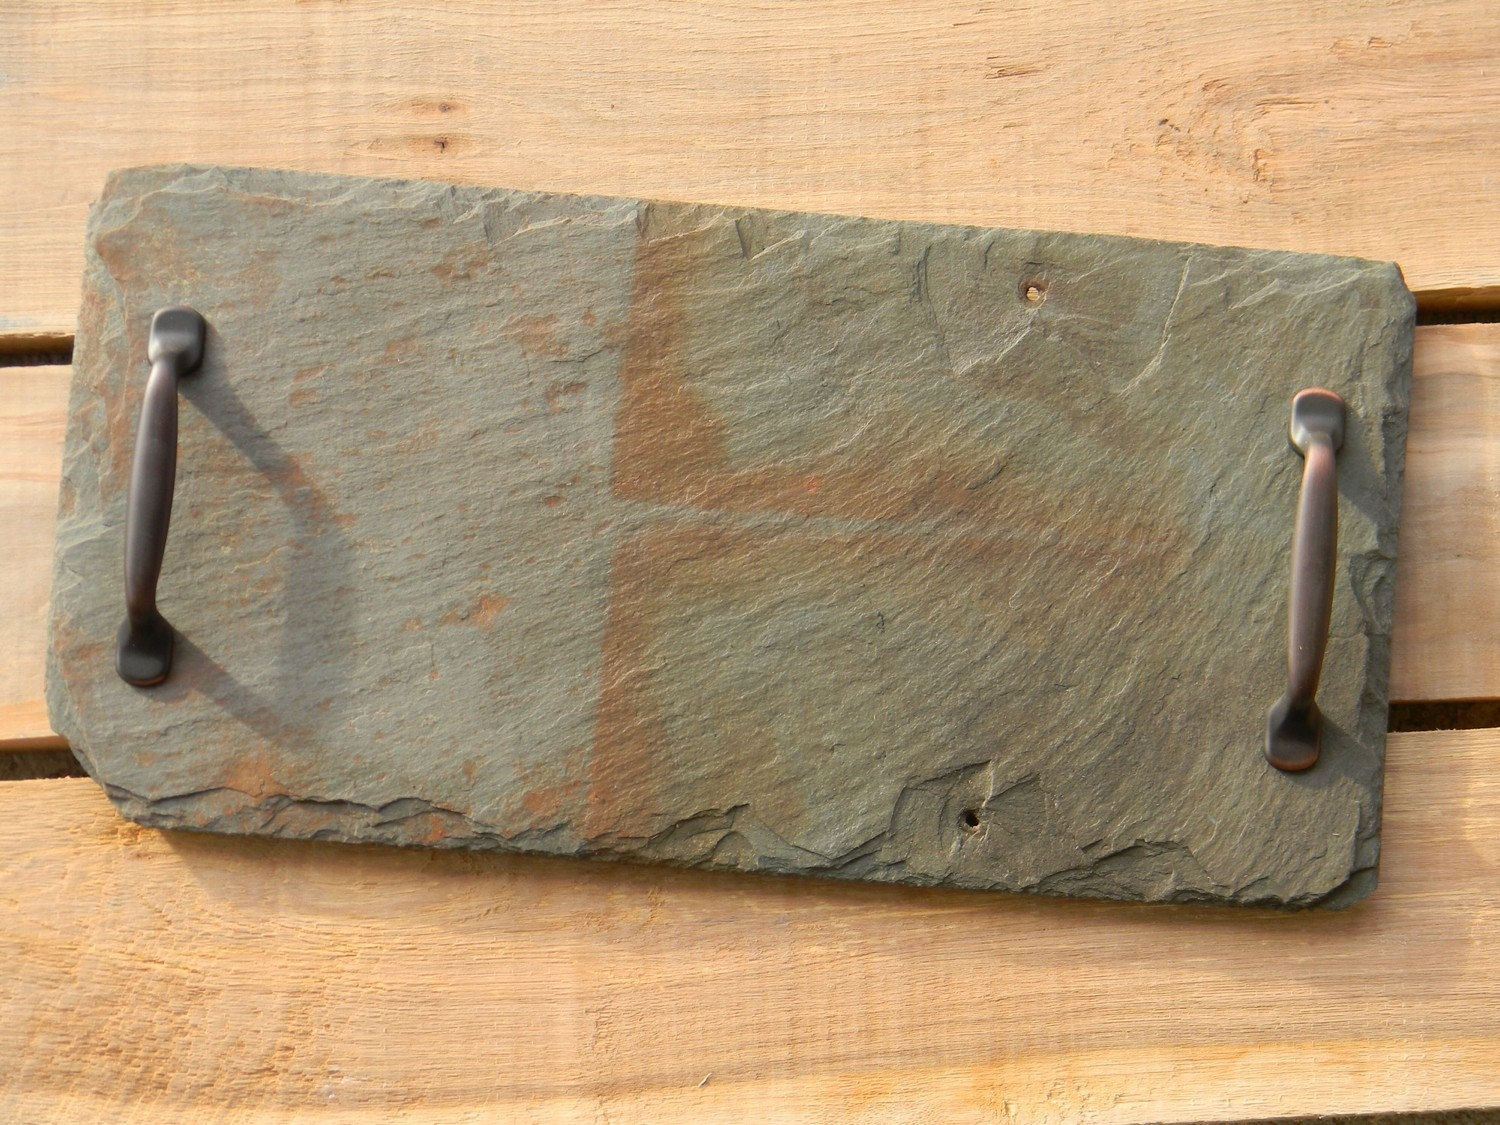 Handmade Slate Cheese Board Tray Board With Reclaimed Ohio Homestead Slate Tile With Bronze Hardware By Cheese Boards Tray Slate Cheese Board Slate Tile Crafts